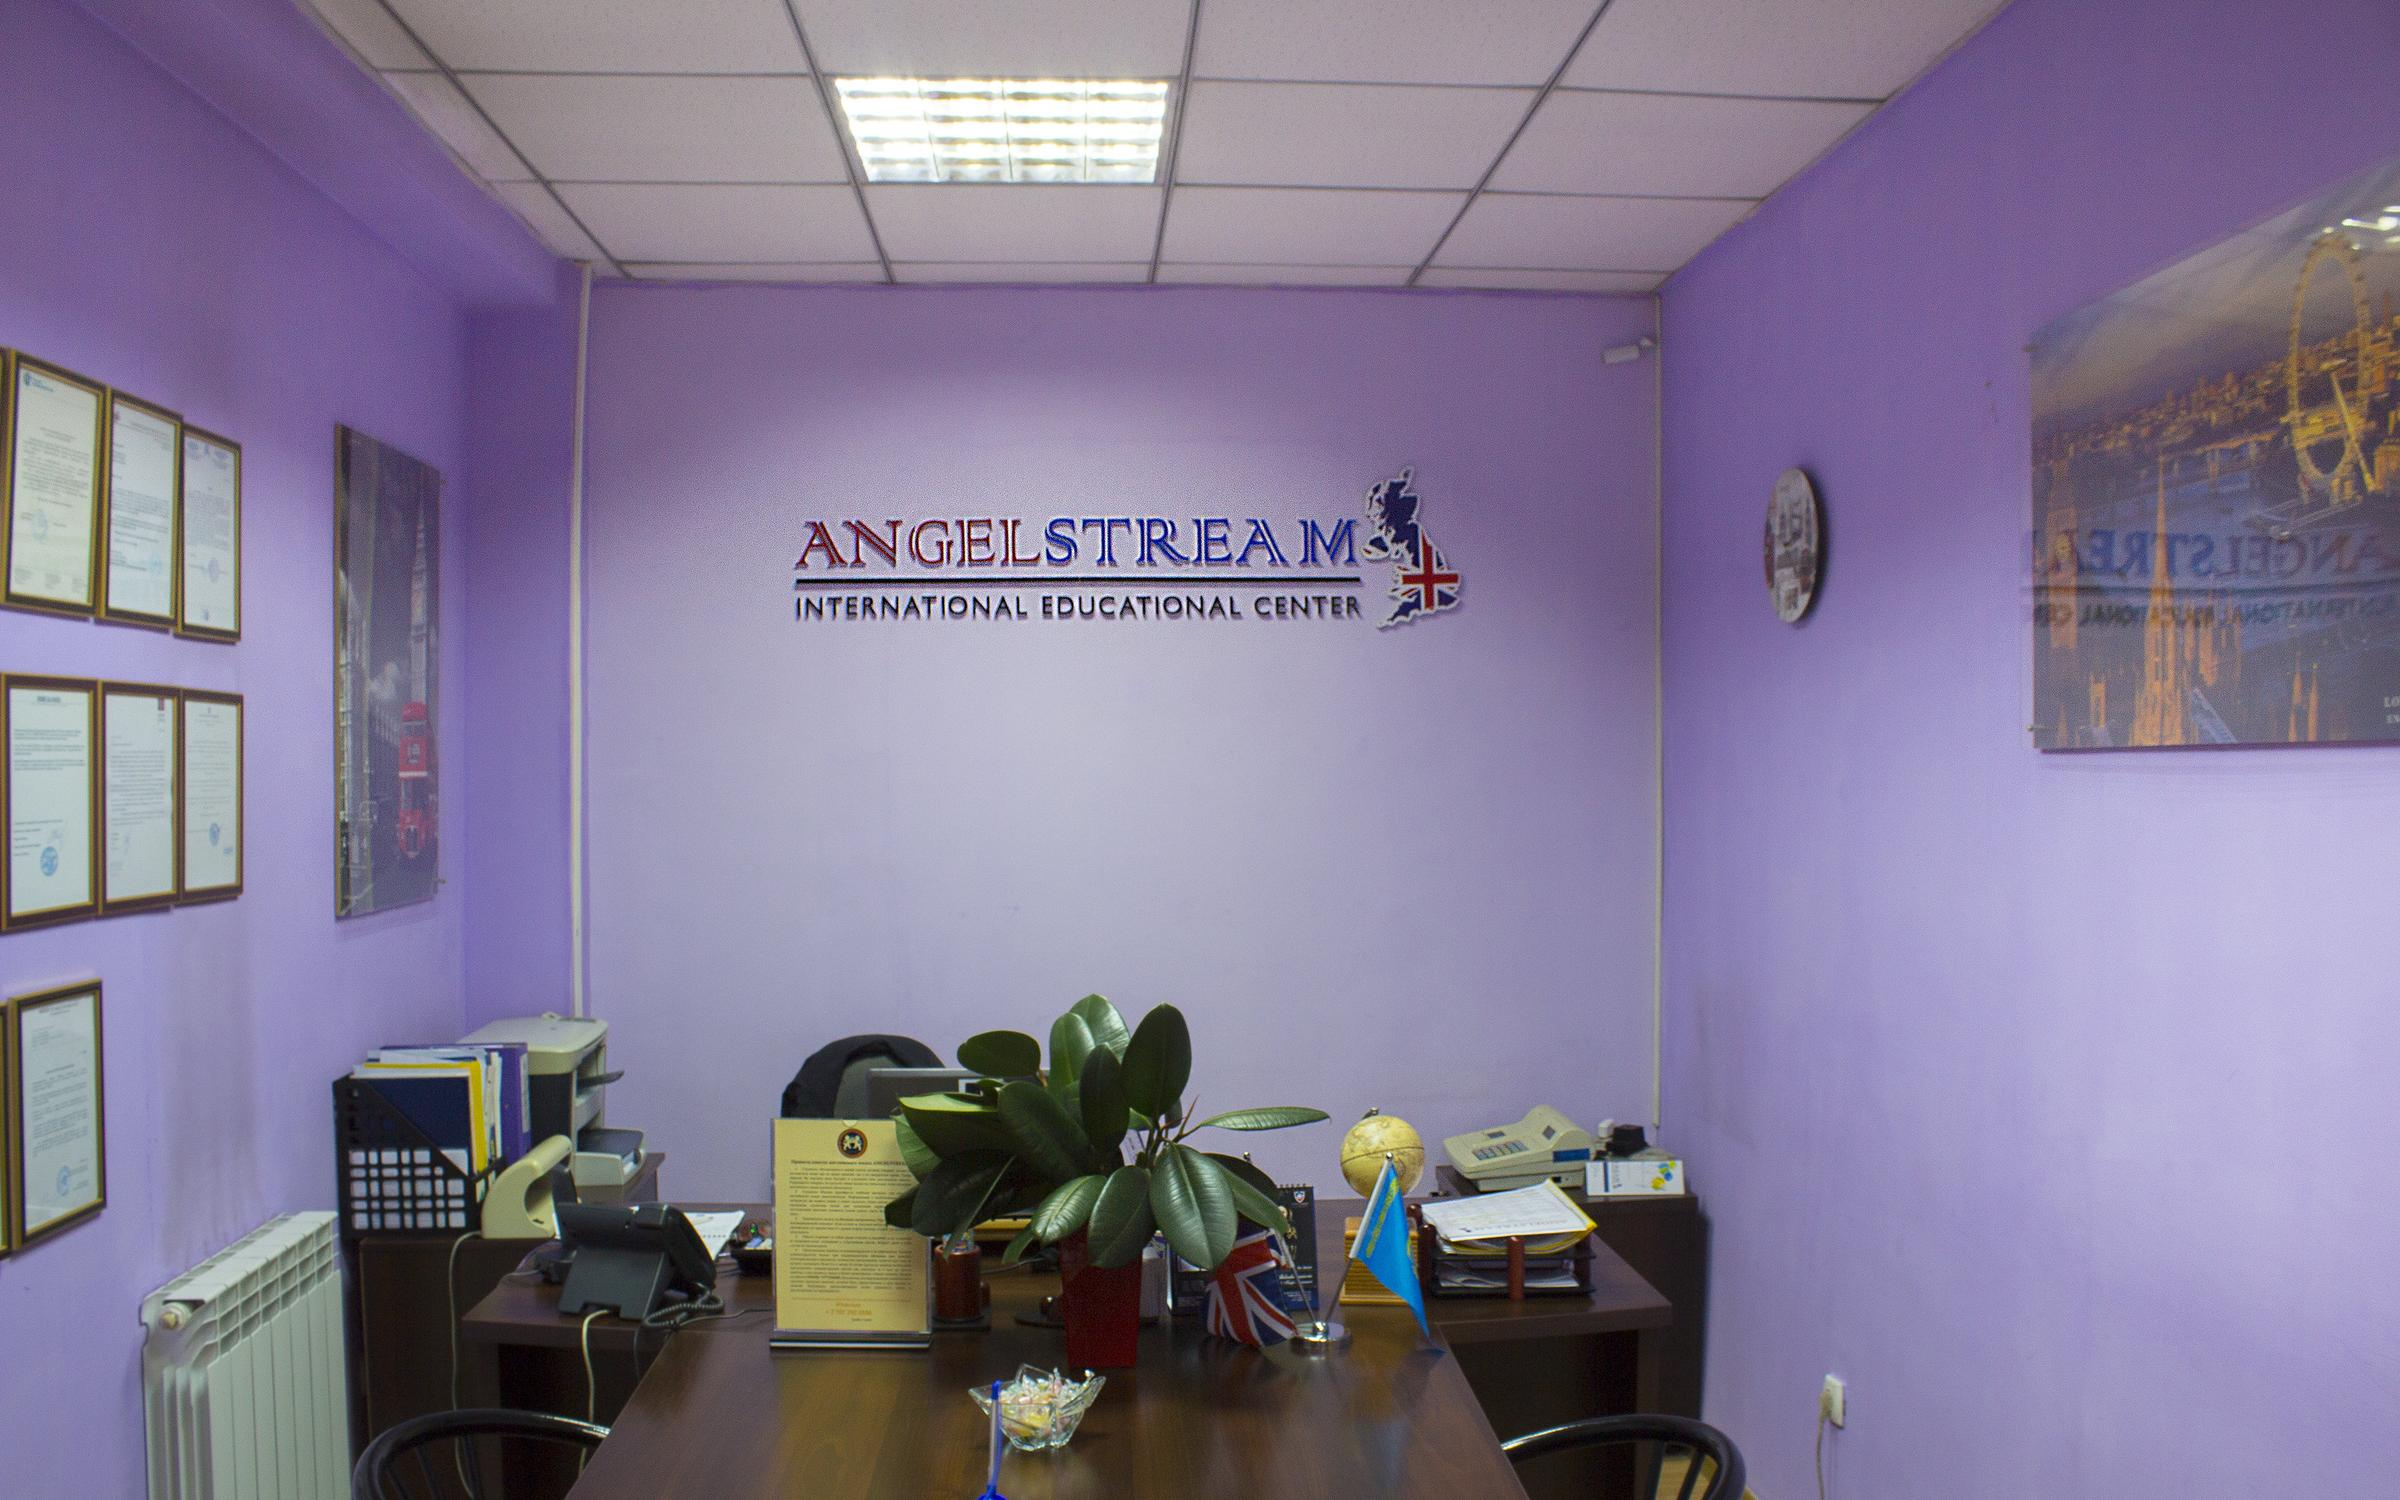 фотография Образовательного центра Angelstream